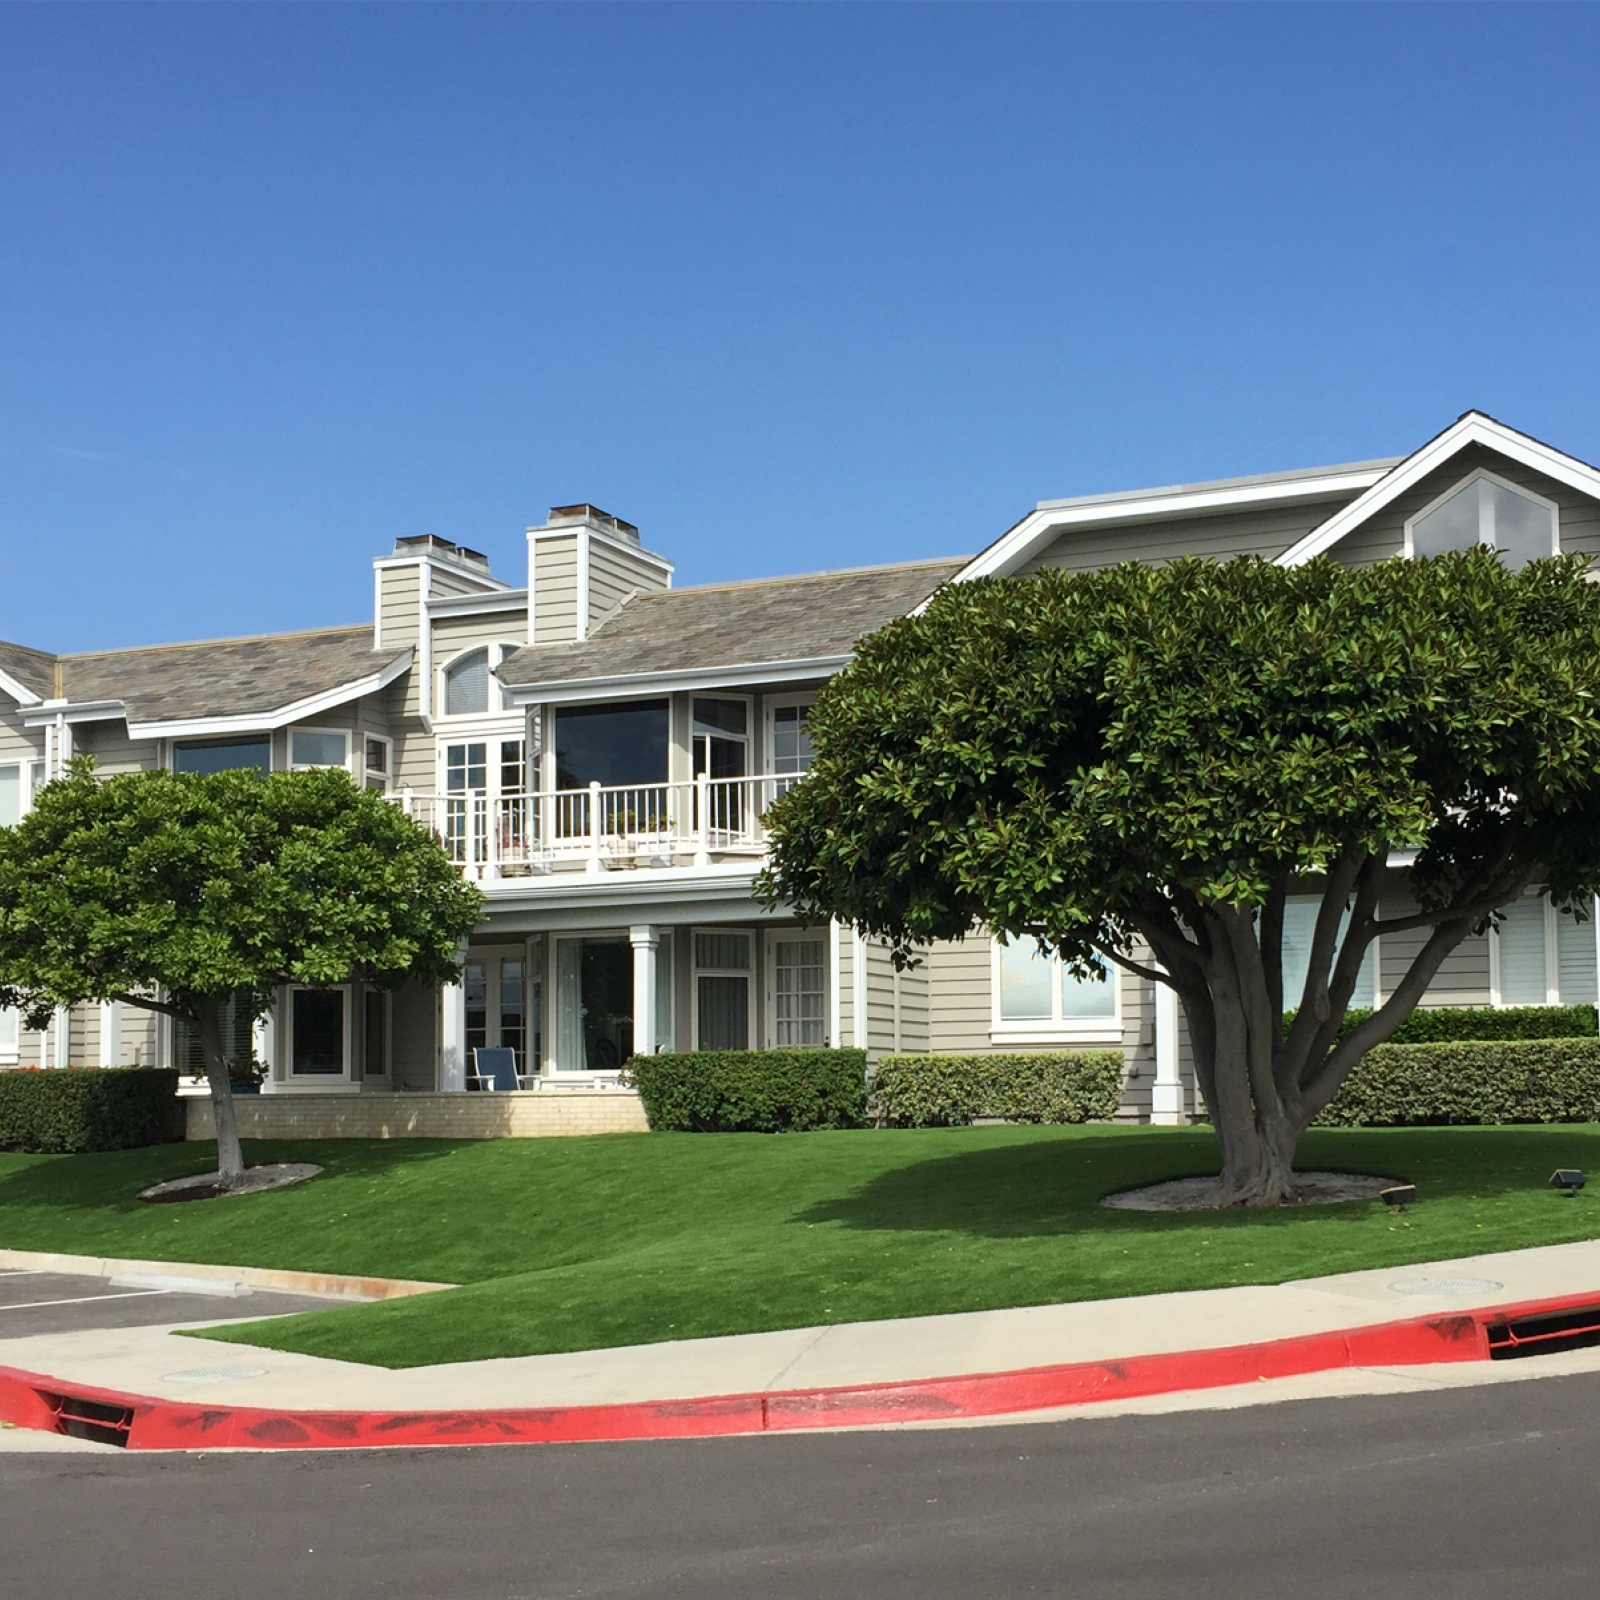 Apartment Complex Artificial Grass Landscaping in Dana Point, California